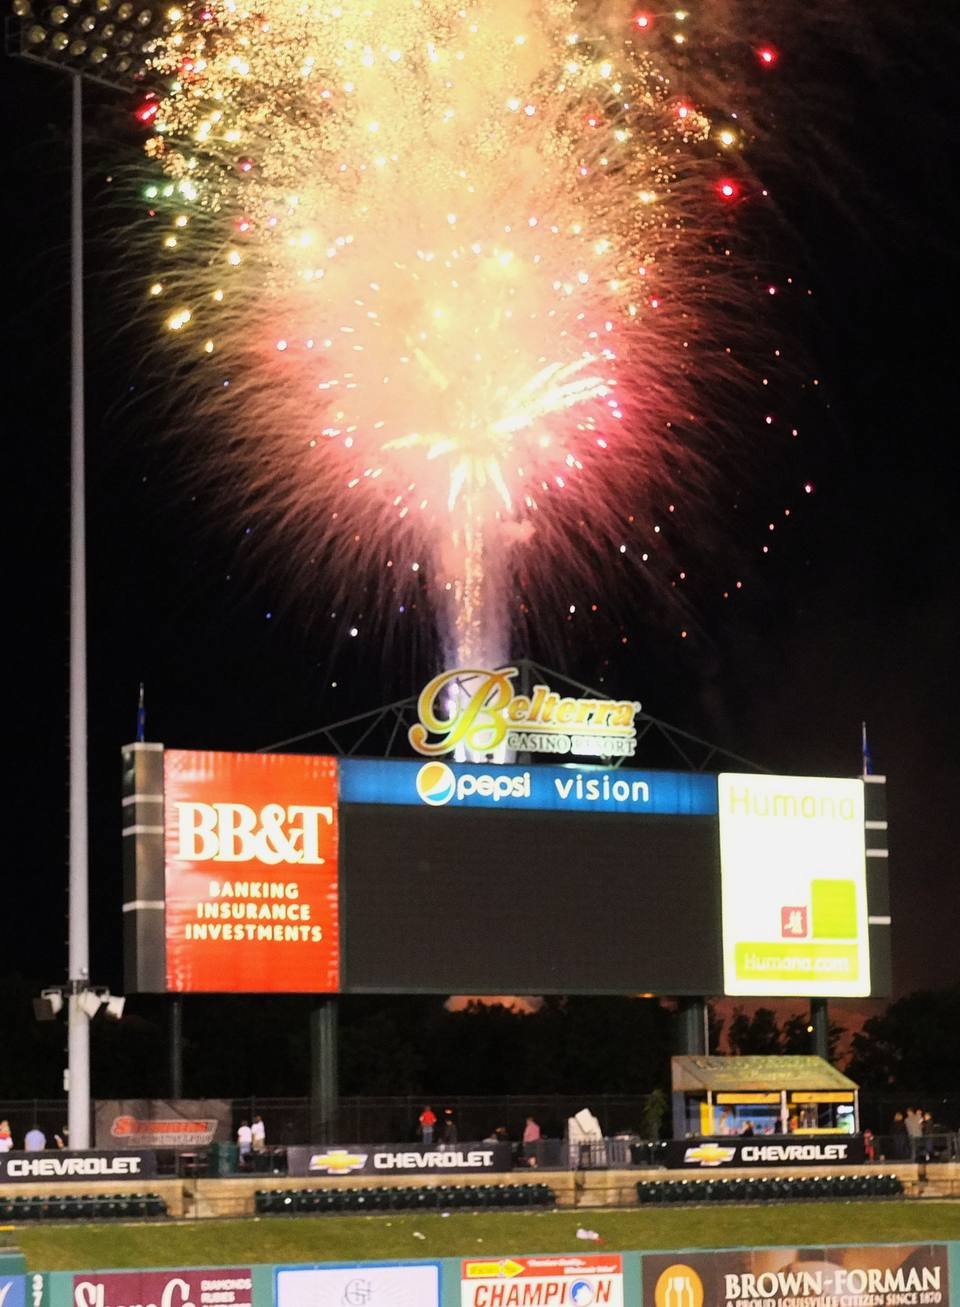 Fireworks at Slugger Field in Louisville, KY